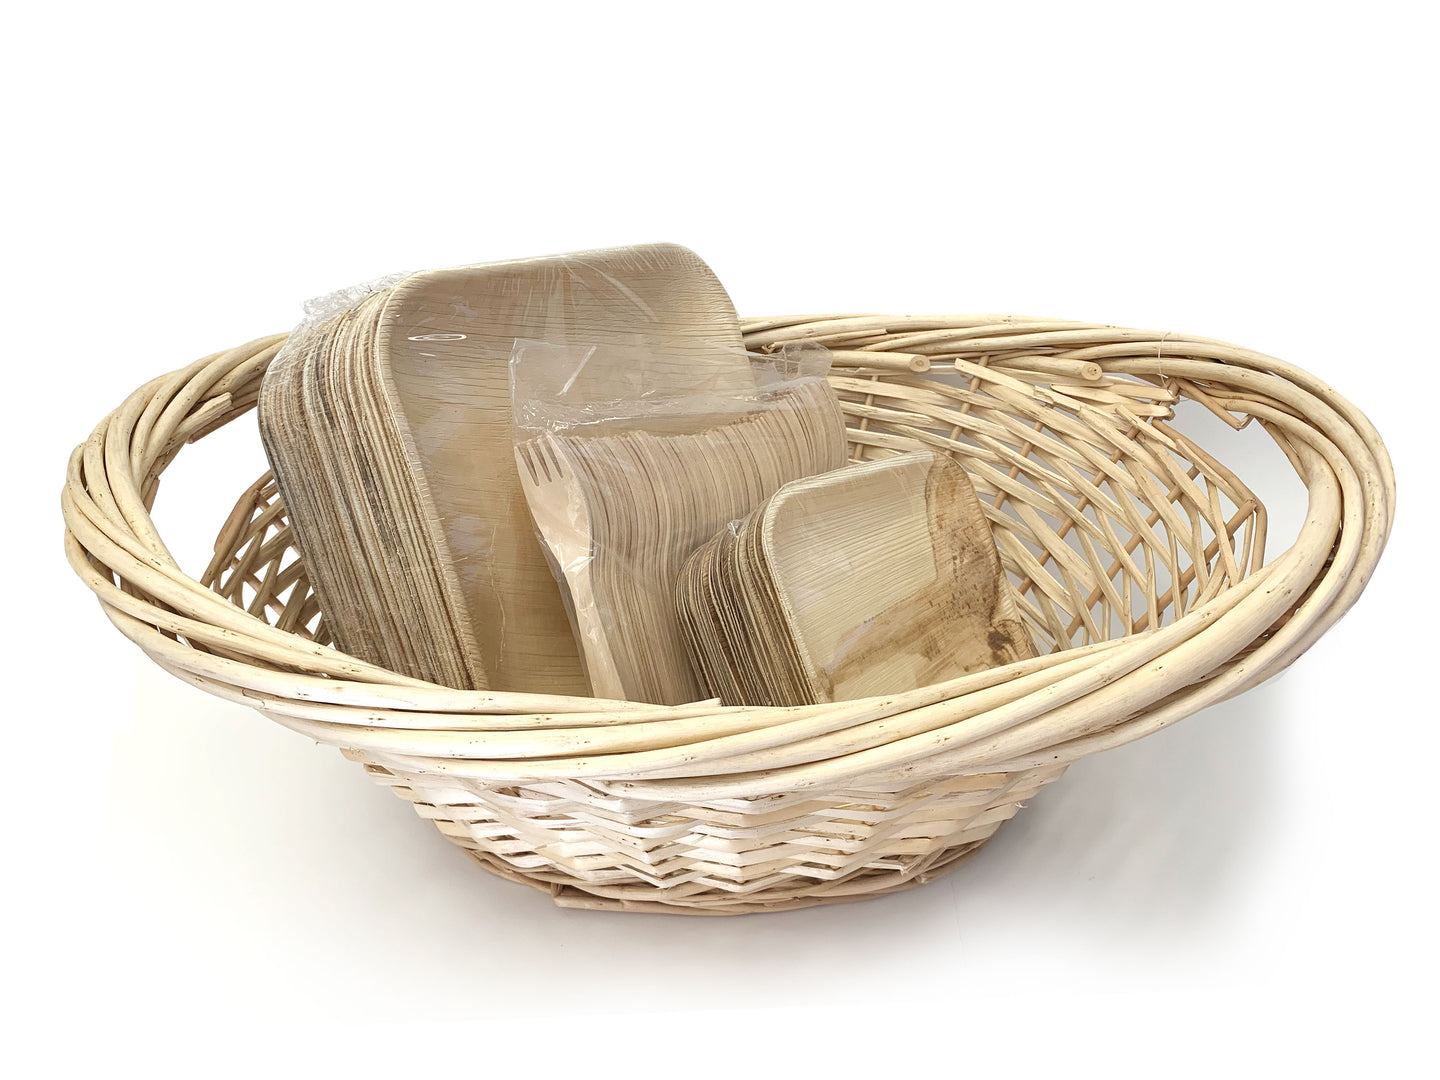 TreeChoice Party Basket and Leaf Plates Package